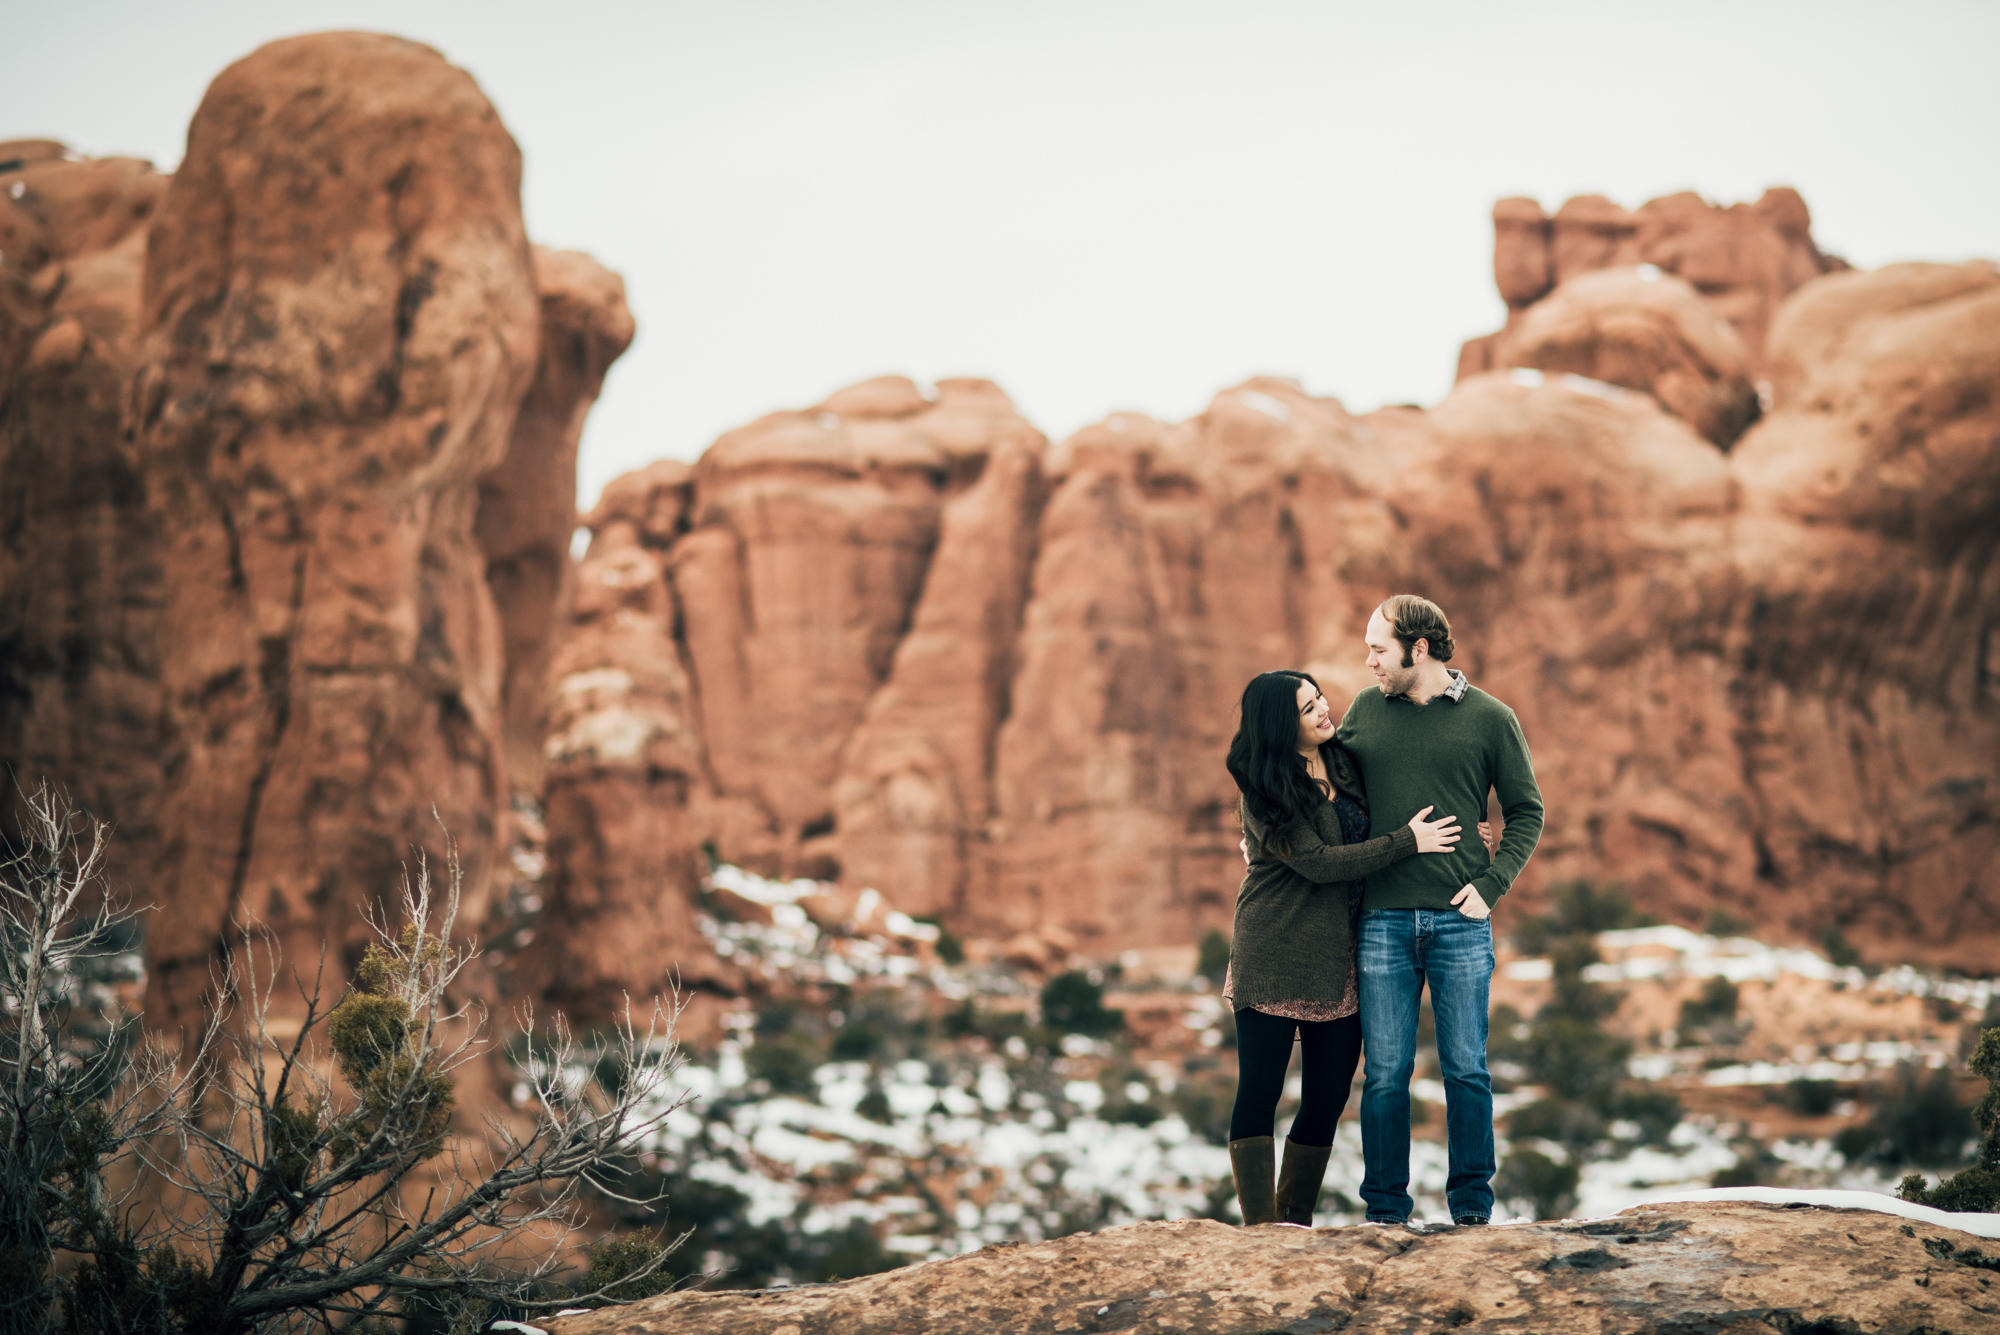 ©Isaiah & Taylor Photography - Arches National Park Adventure Engagement, Moab Utah-005.jpg